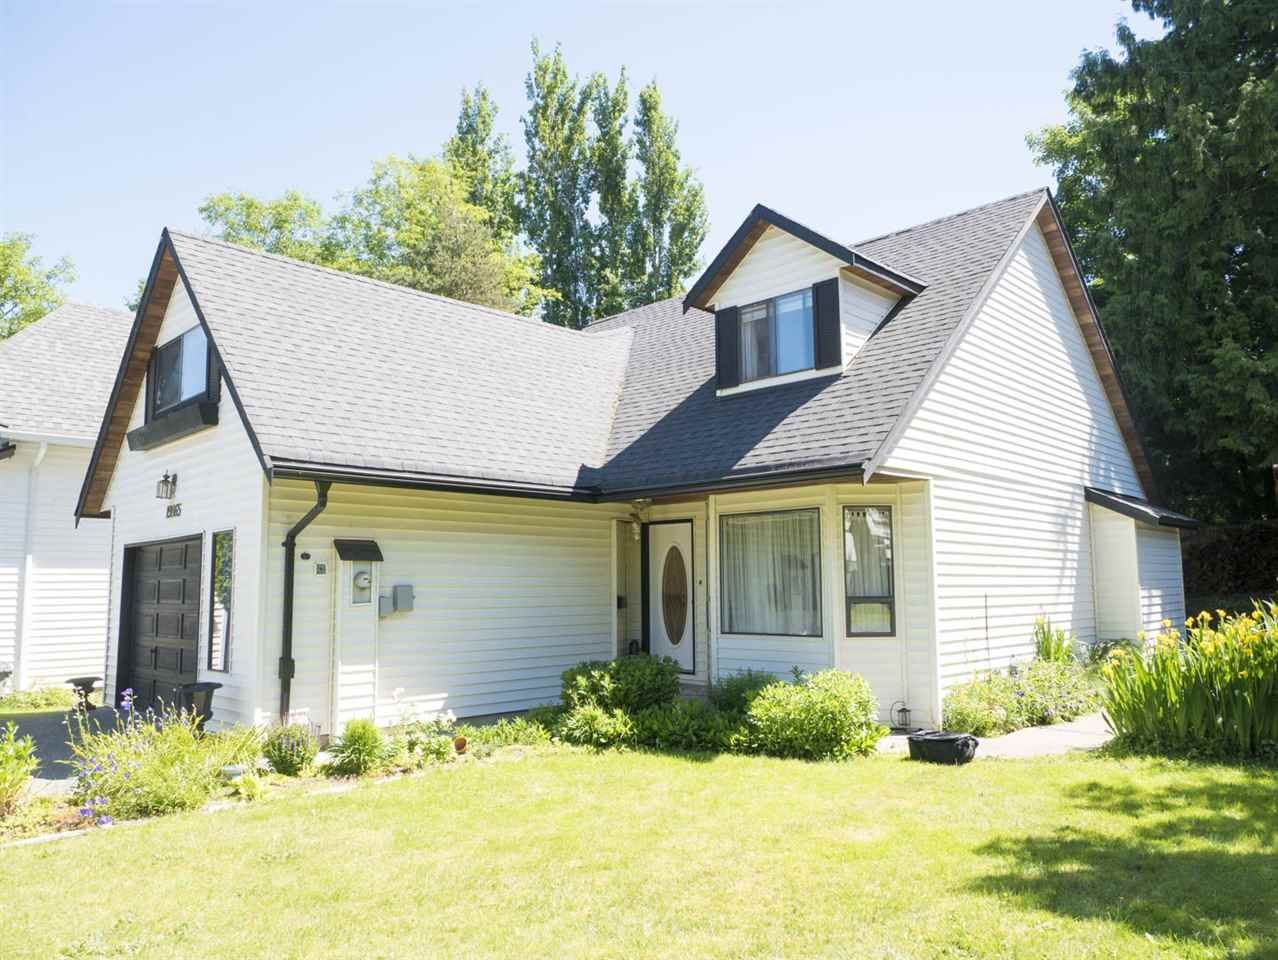 Main Photo: 19865 50A Avenue in Langley: Langley City House for sale : MLS®# R2174063